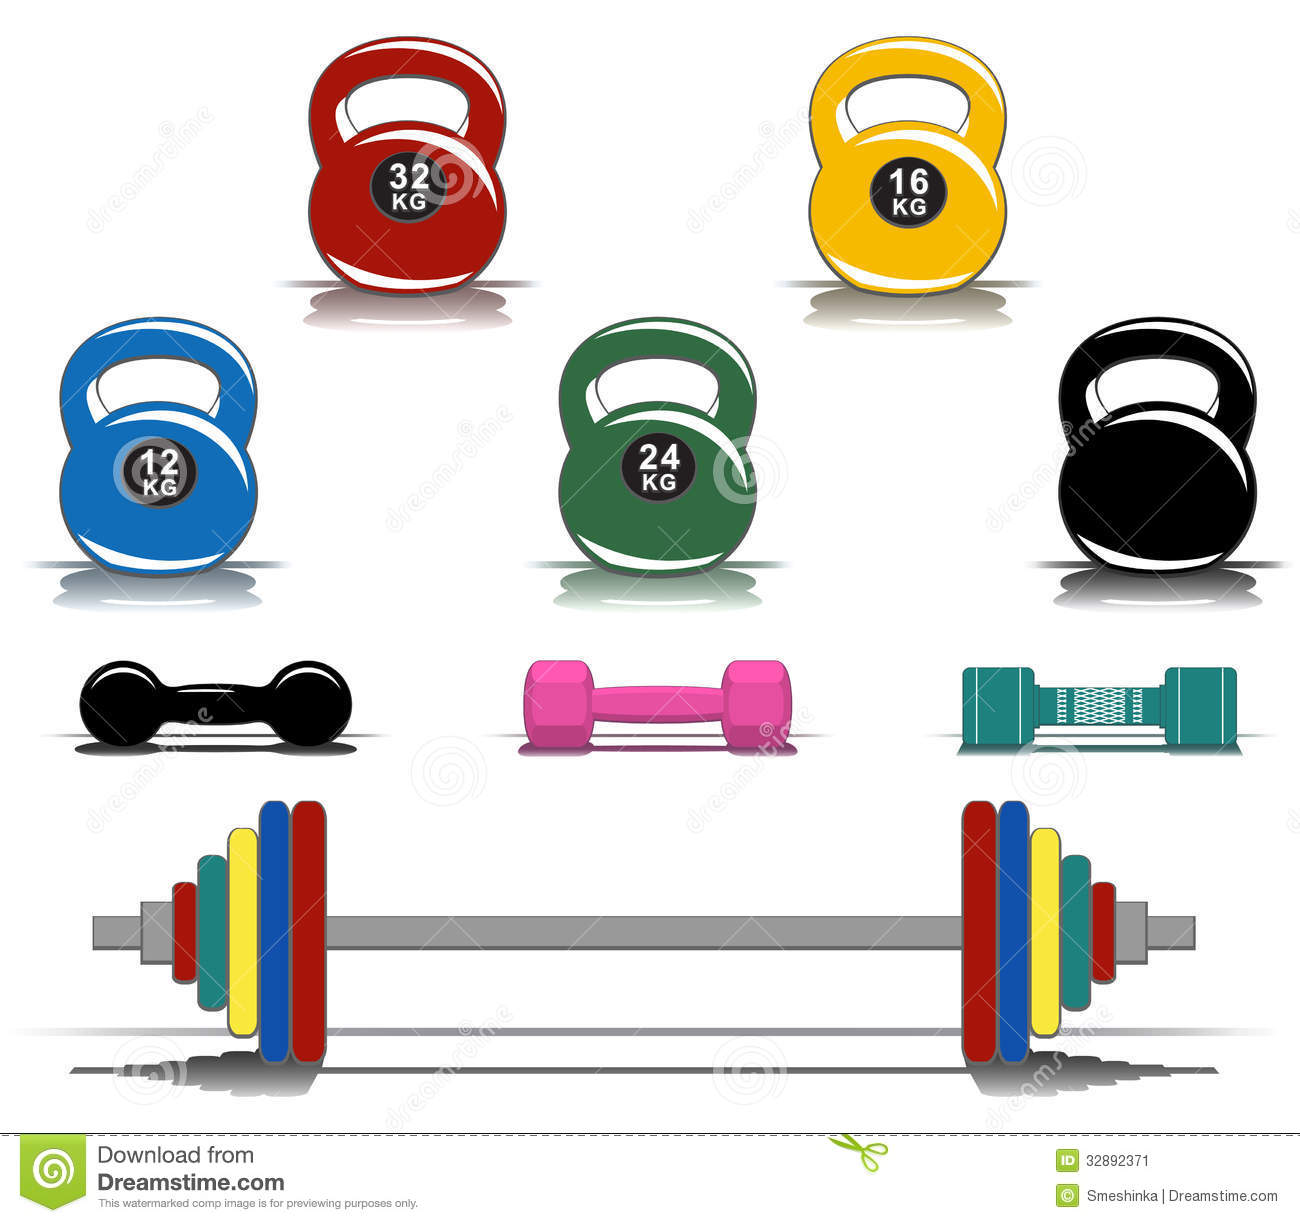 Work out equipment clipart.